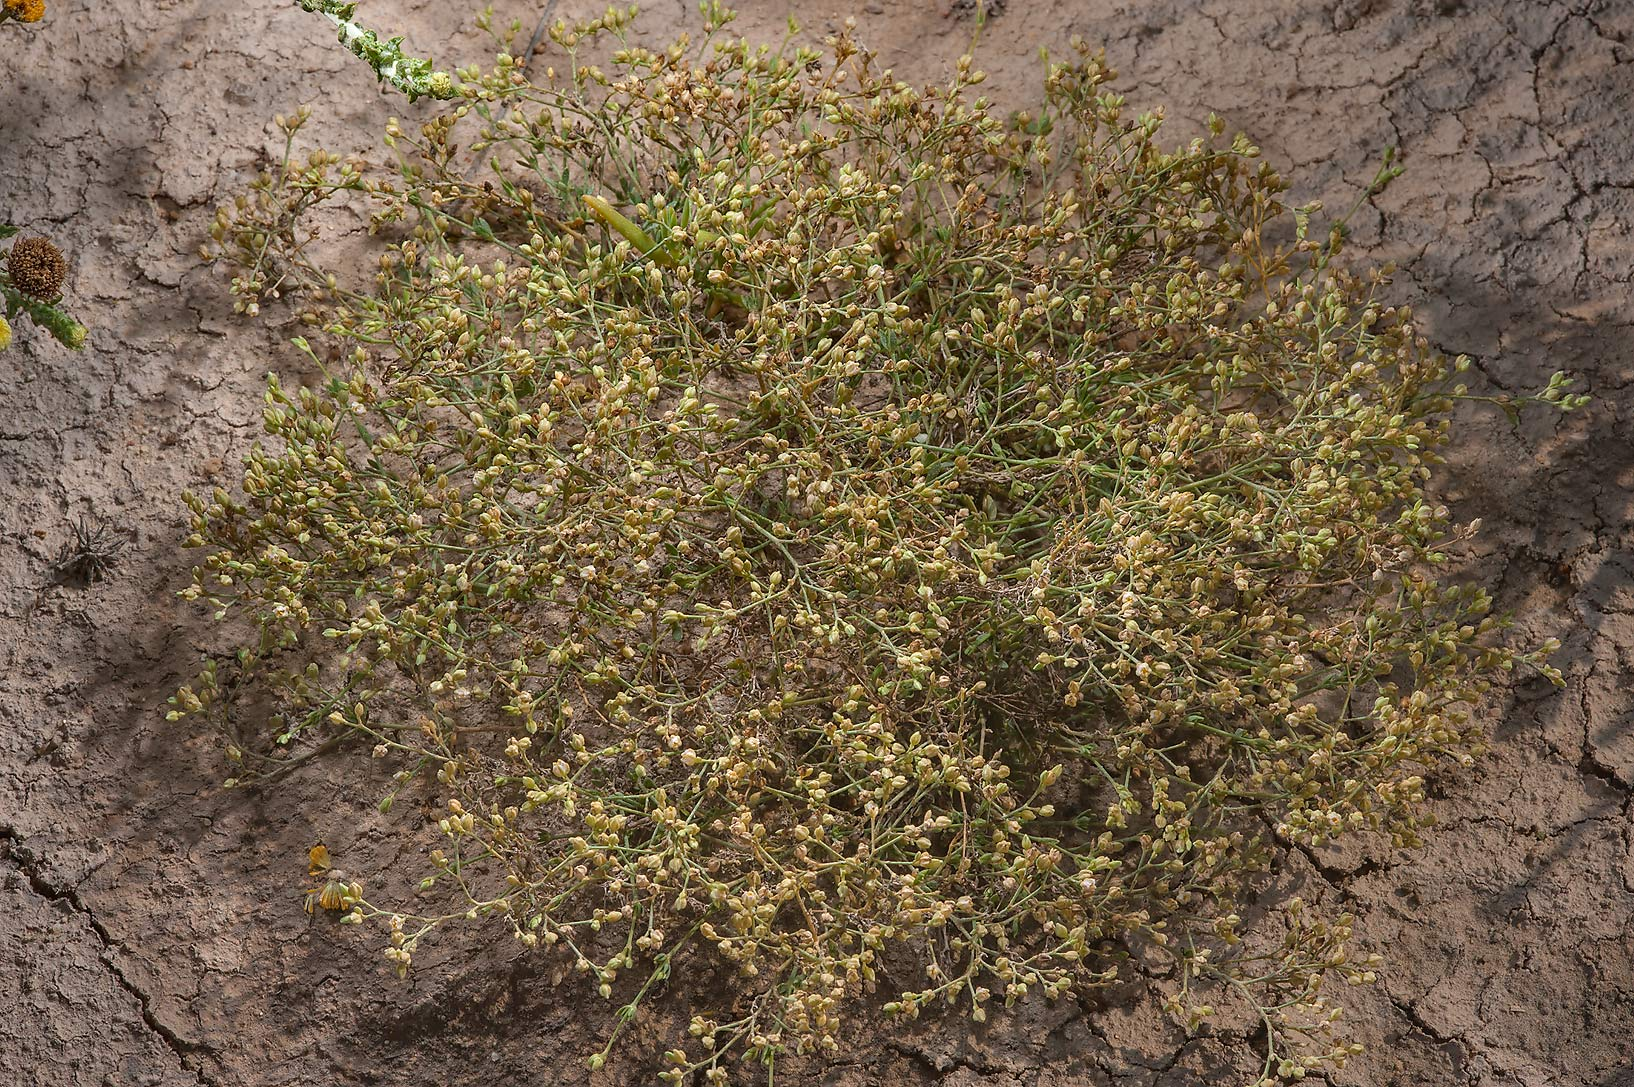 Small plant of Spergula fallax in a roadside depression in Rawdat Rashed. Qatar